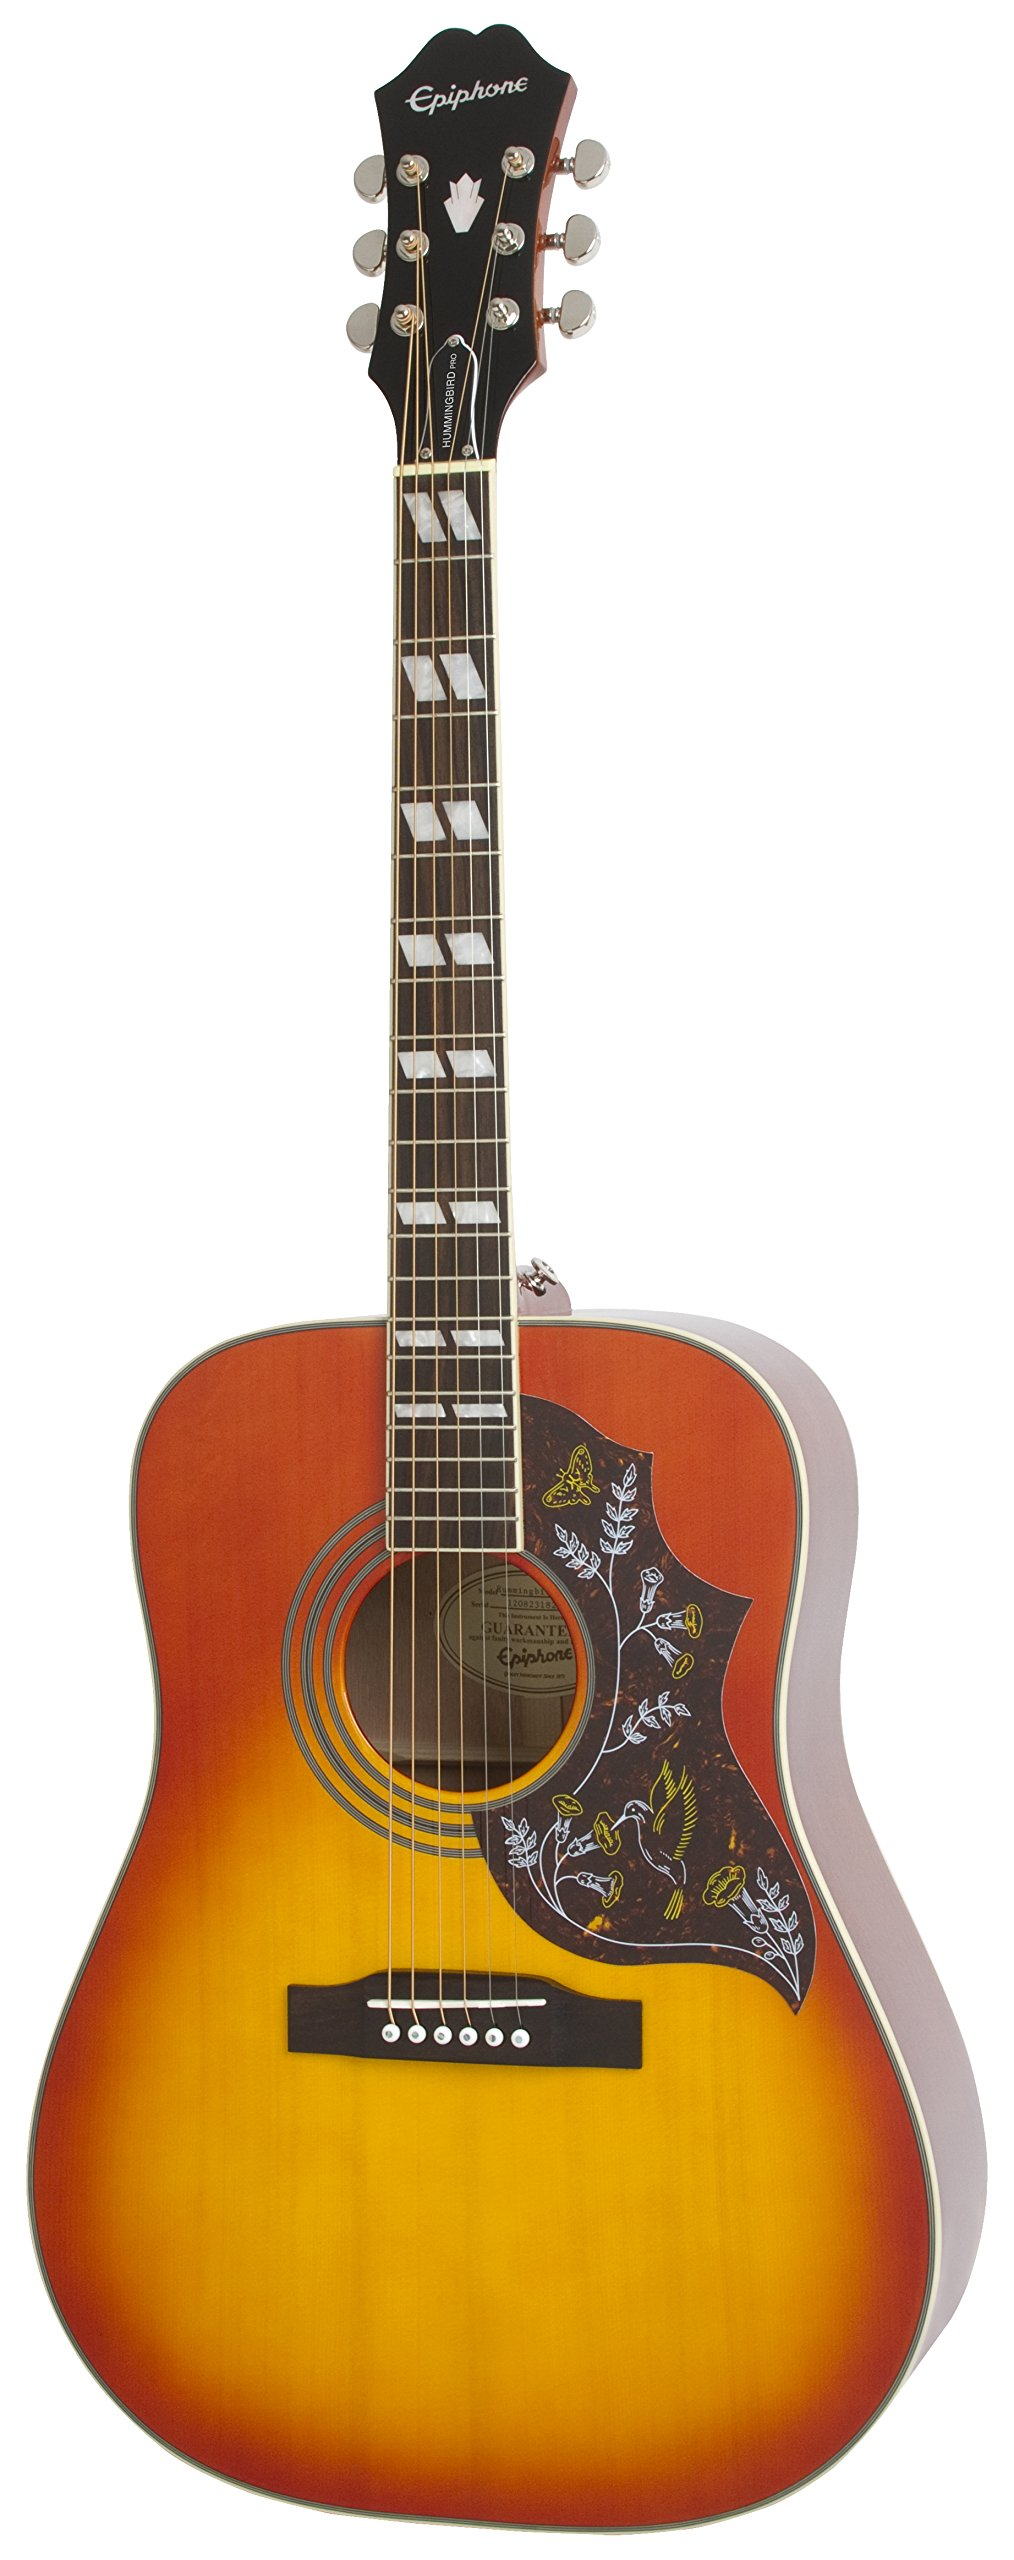 Enthusiastic Yamaha Fgx820c Acoustic-electric Guitar Always Buy Good Guitars & Basses